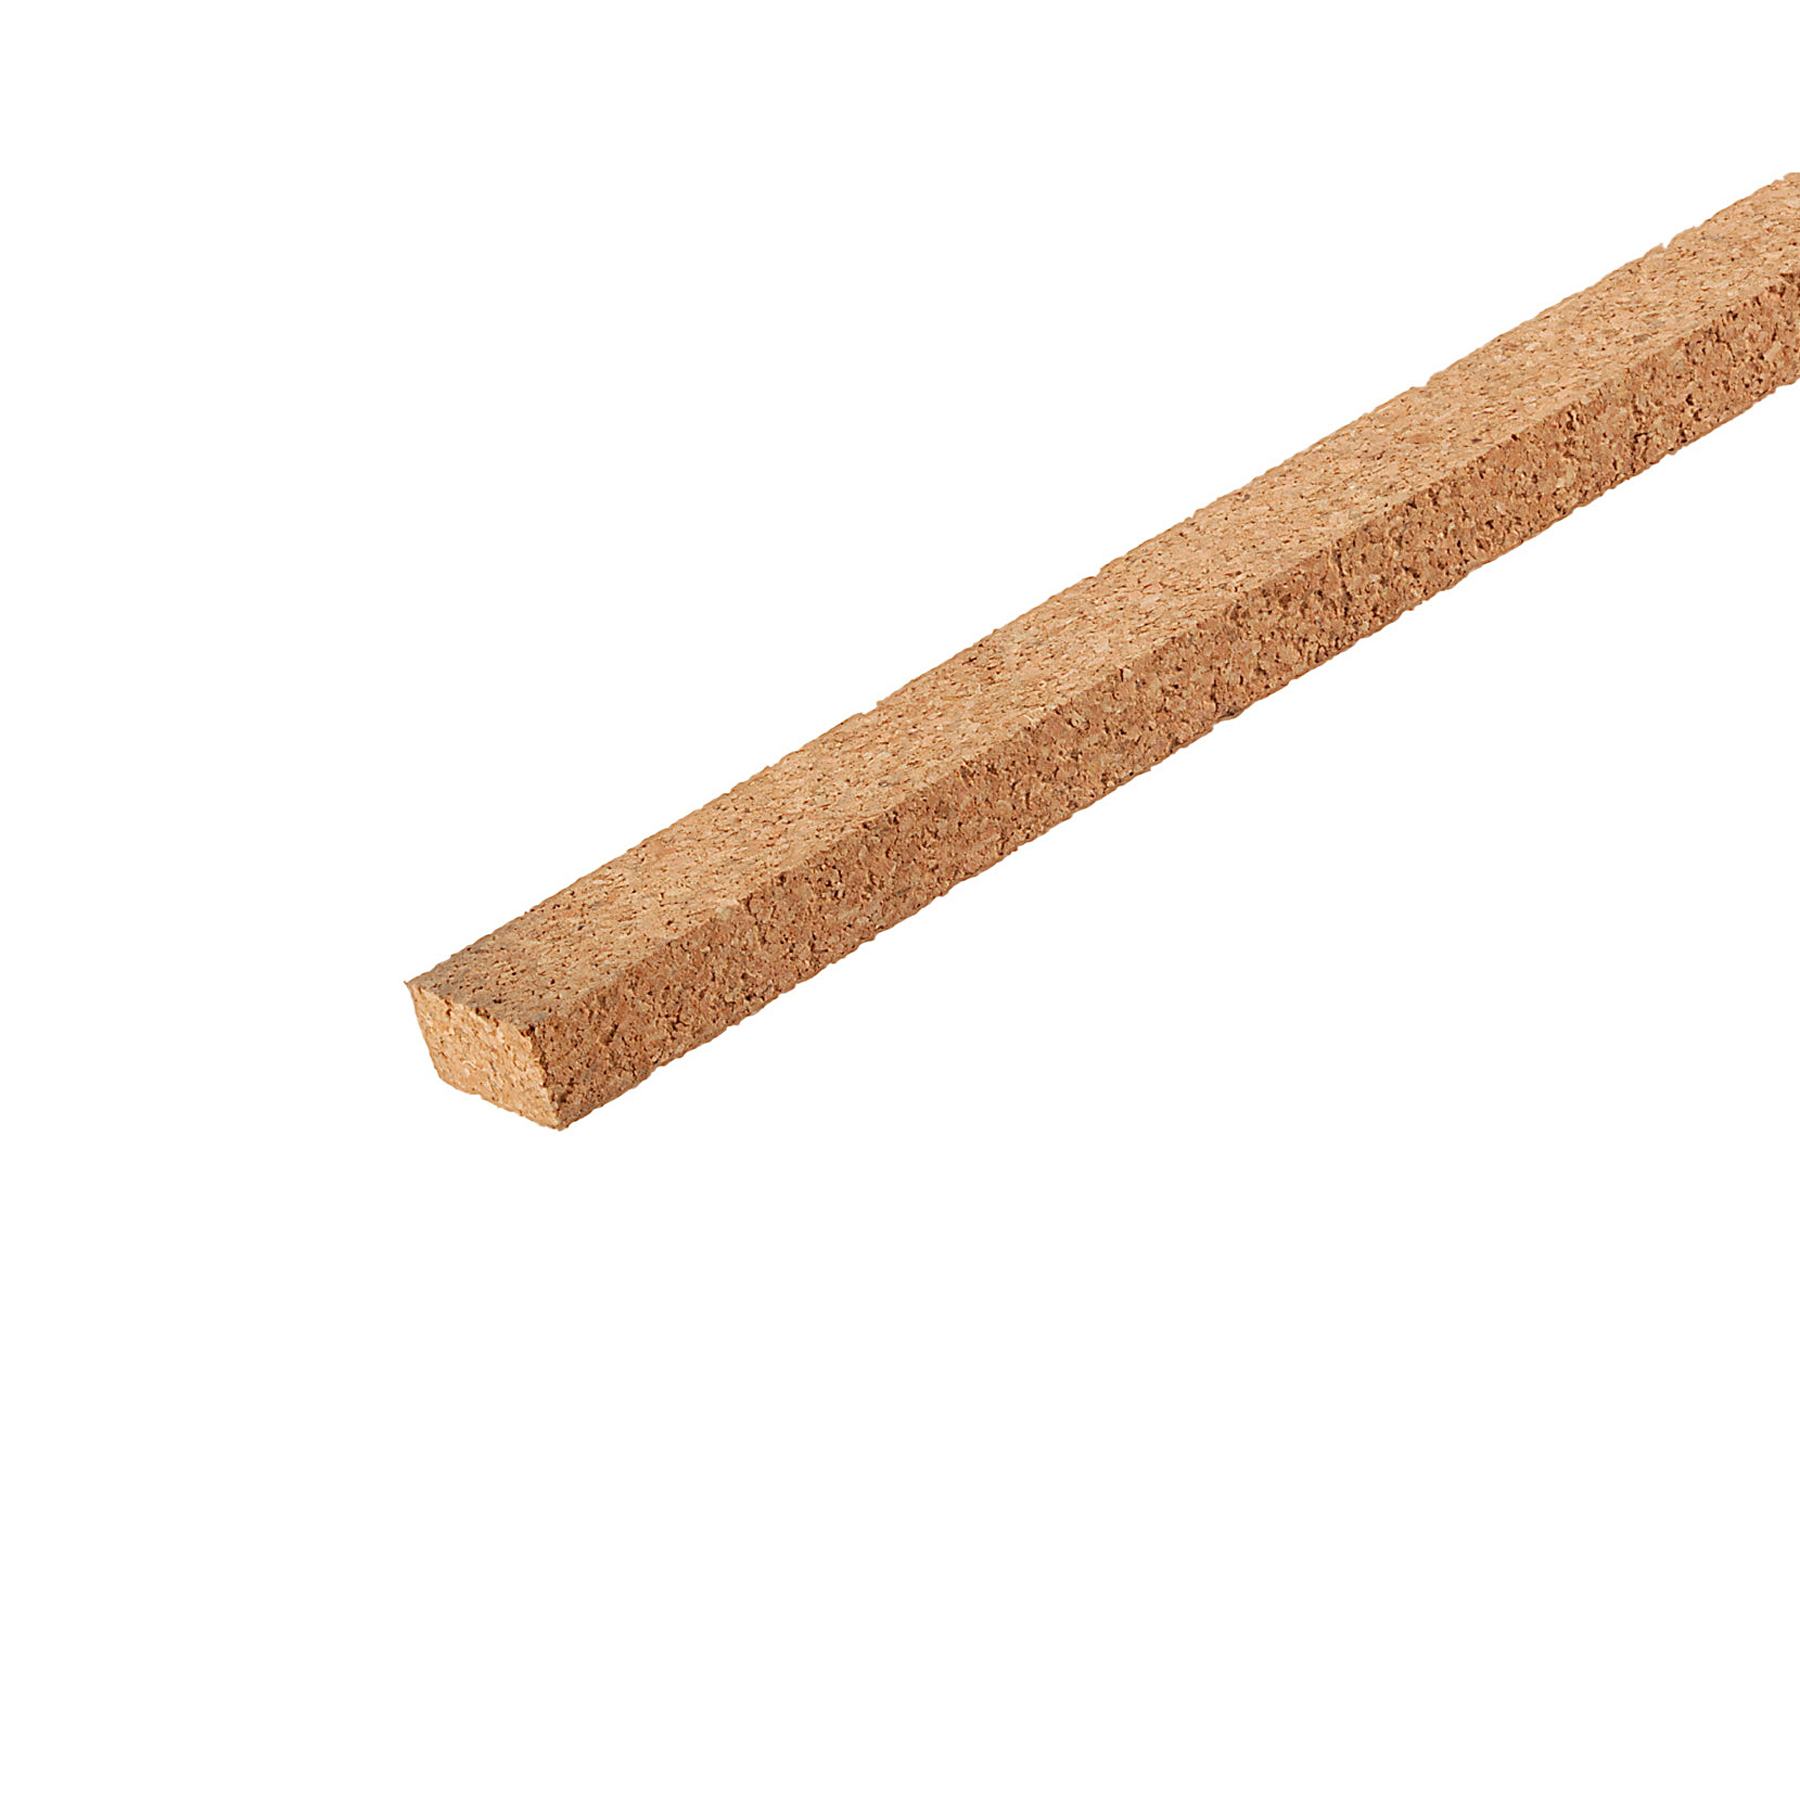 12mm X 22mm Cork Expansion Strip 920mm